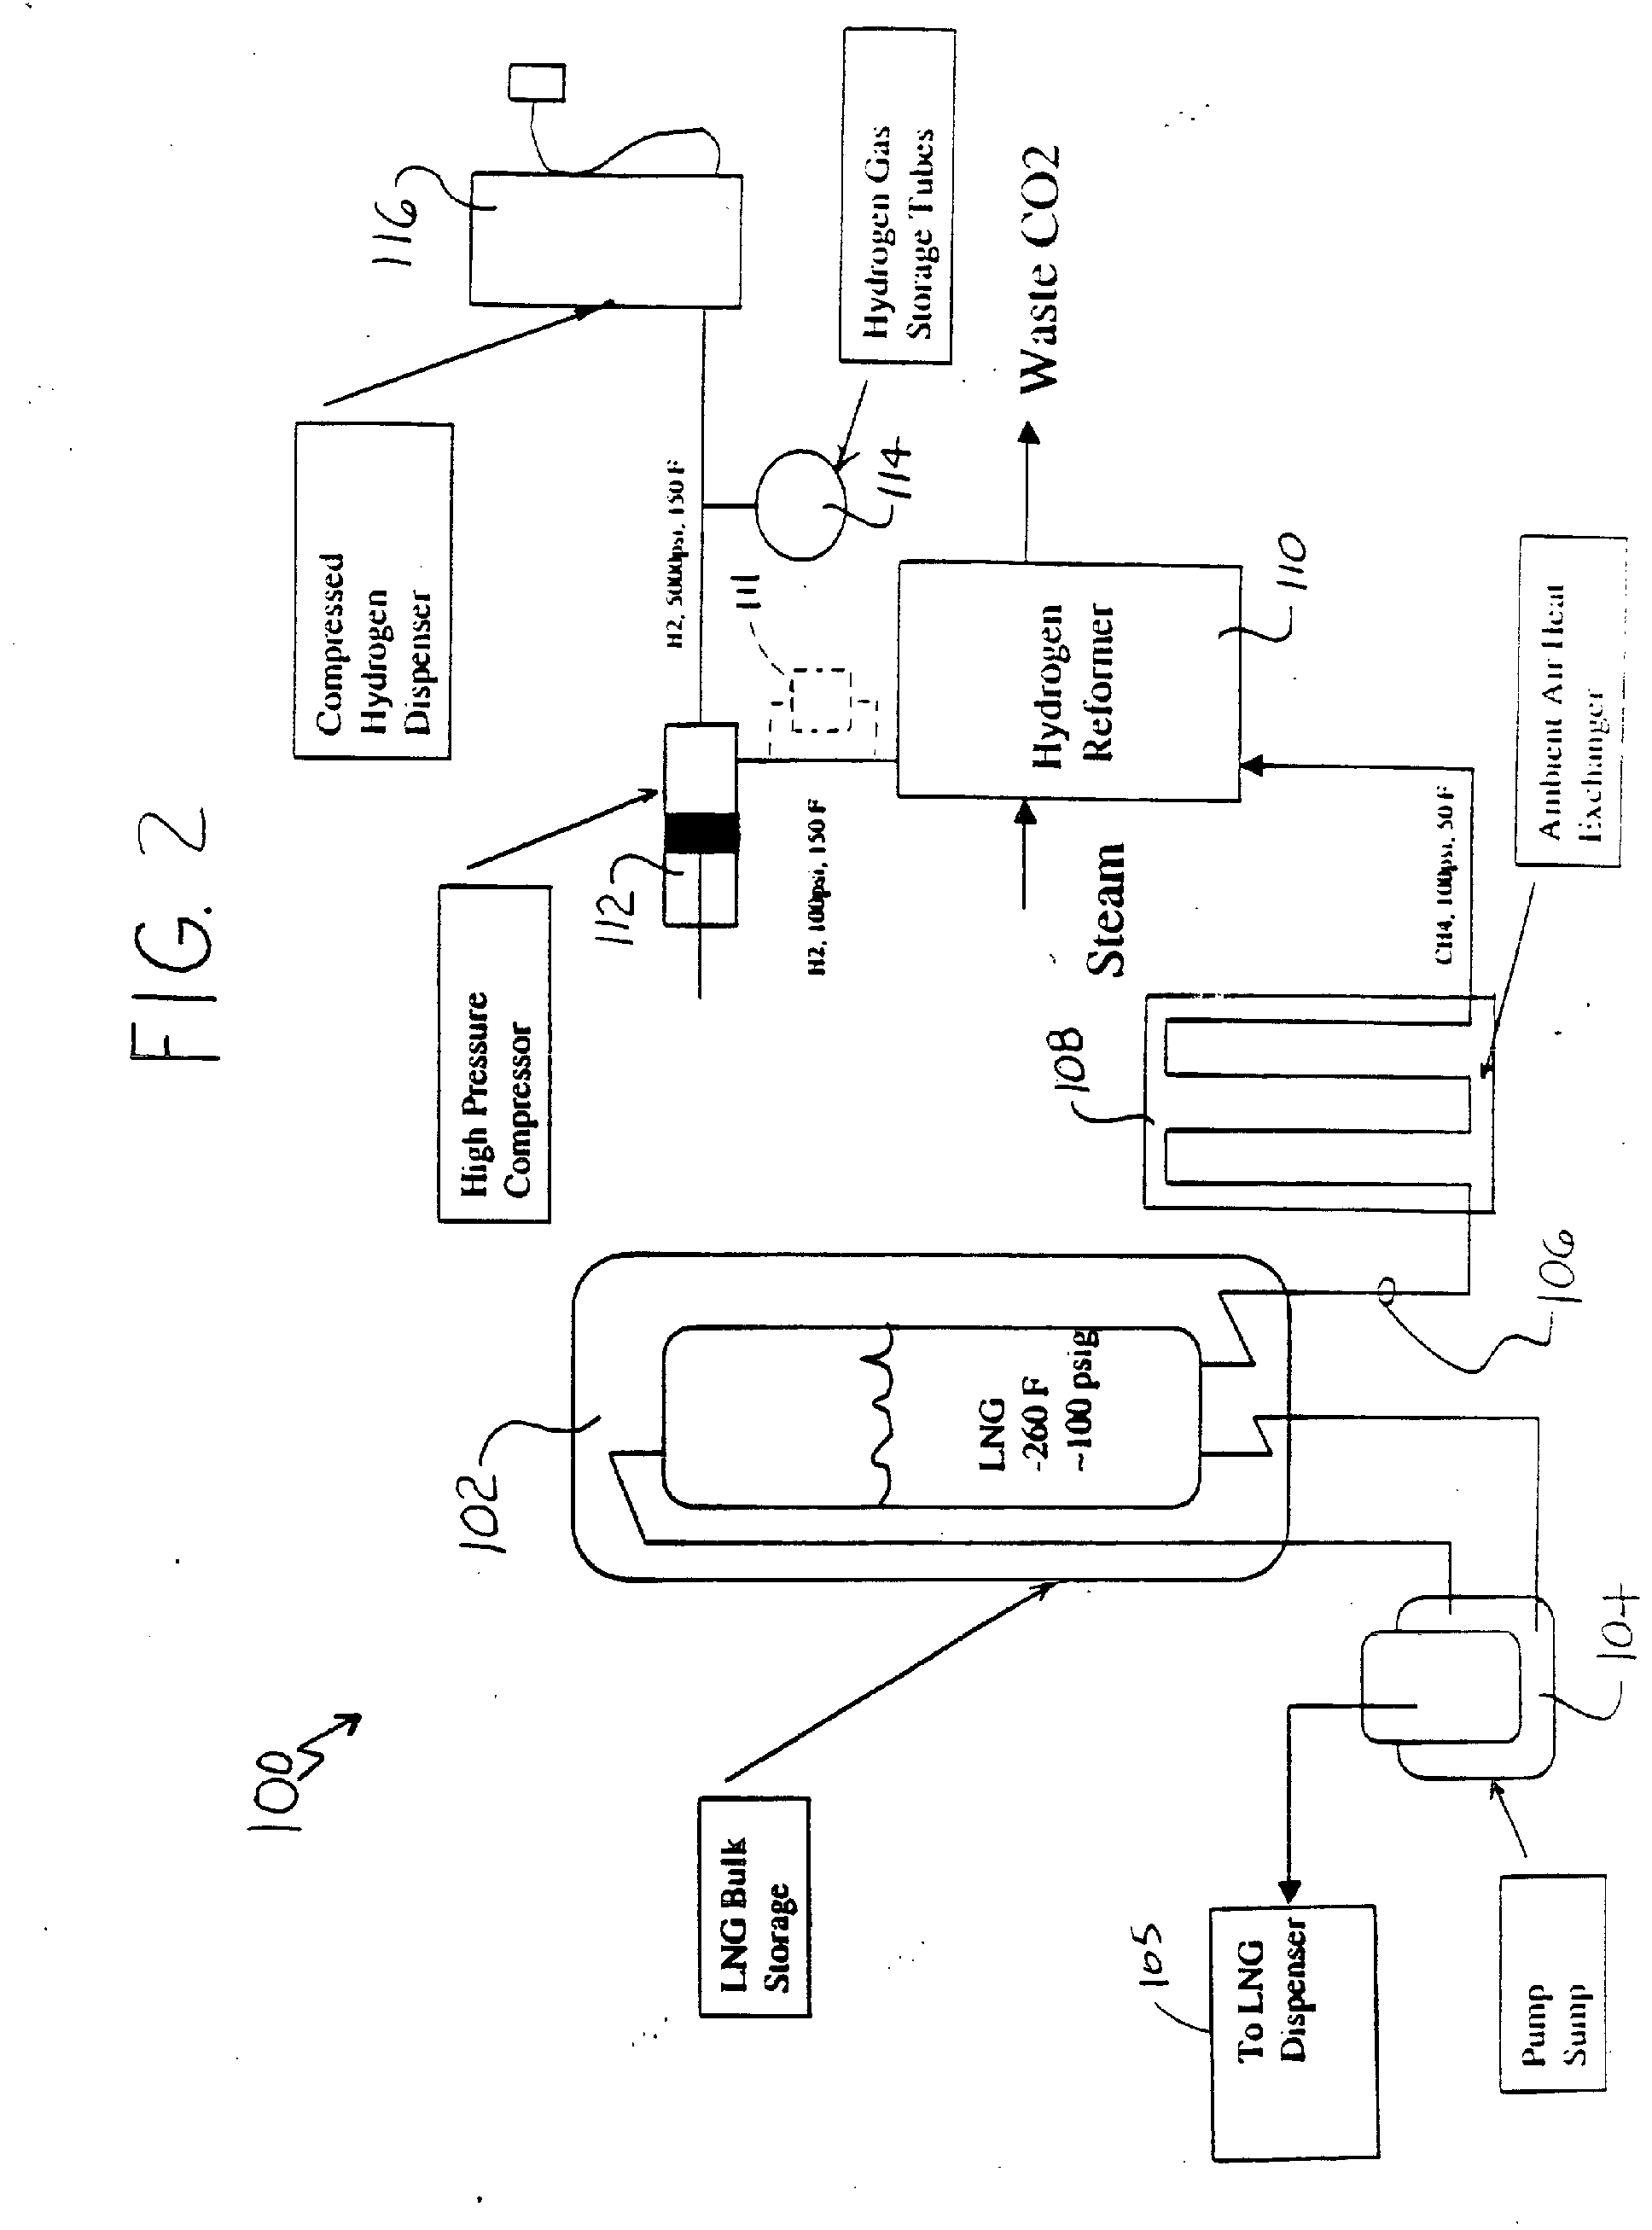 EP1267432A2 likewise Ship Engine Diagram likewise Diesel Engine Electrical System besides 91 Buick Lesabre Parts also Plug Nozzle Engine Diagram. on lng engine fuel system diagram